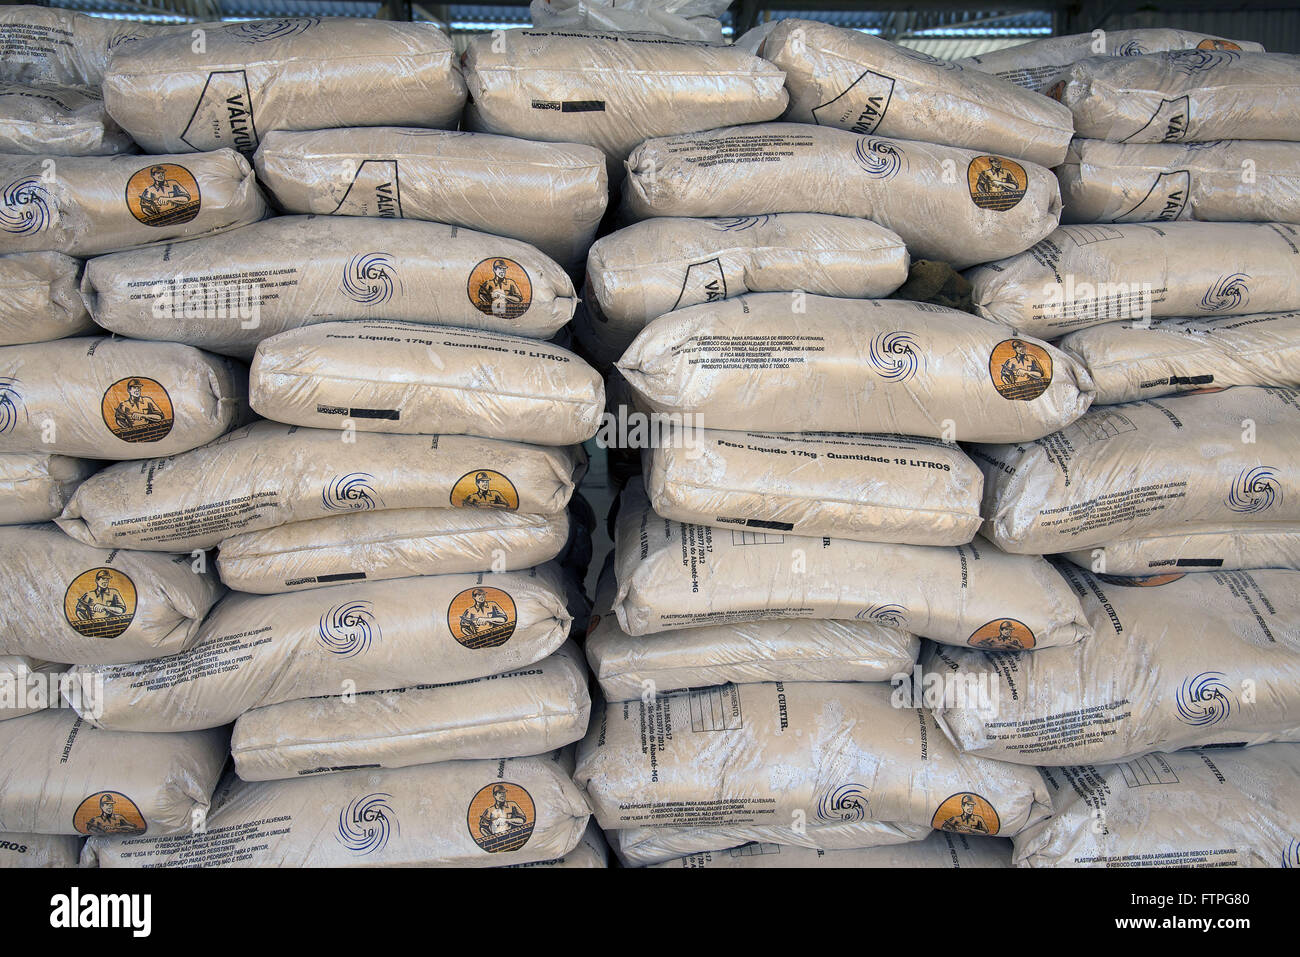 Bags of mineral alloy used for plaster and porcelain tiles in place of exploitation of phyllite or filadio - Stock Image